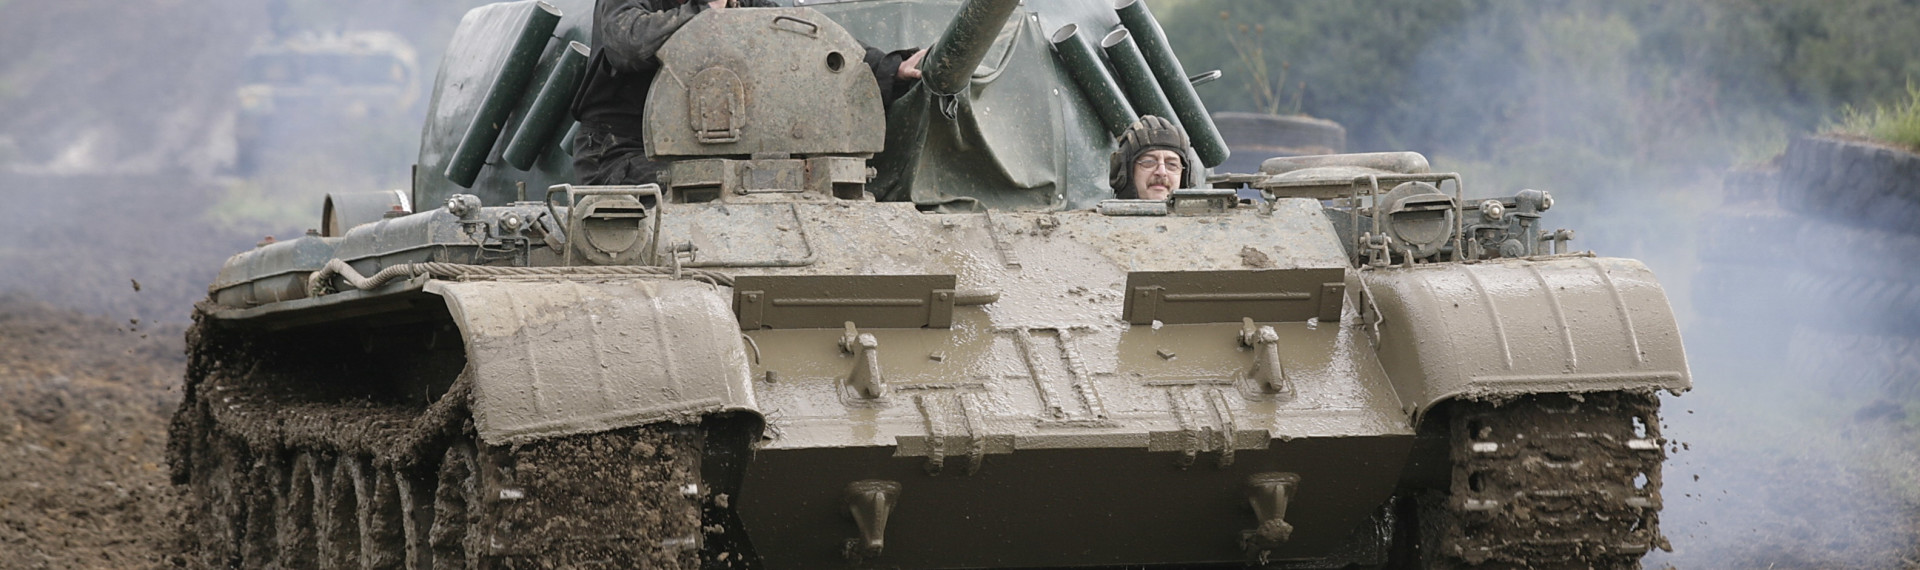 Berlin Tank Driving (be a passenger) image